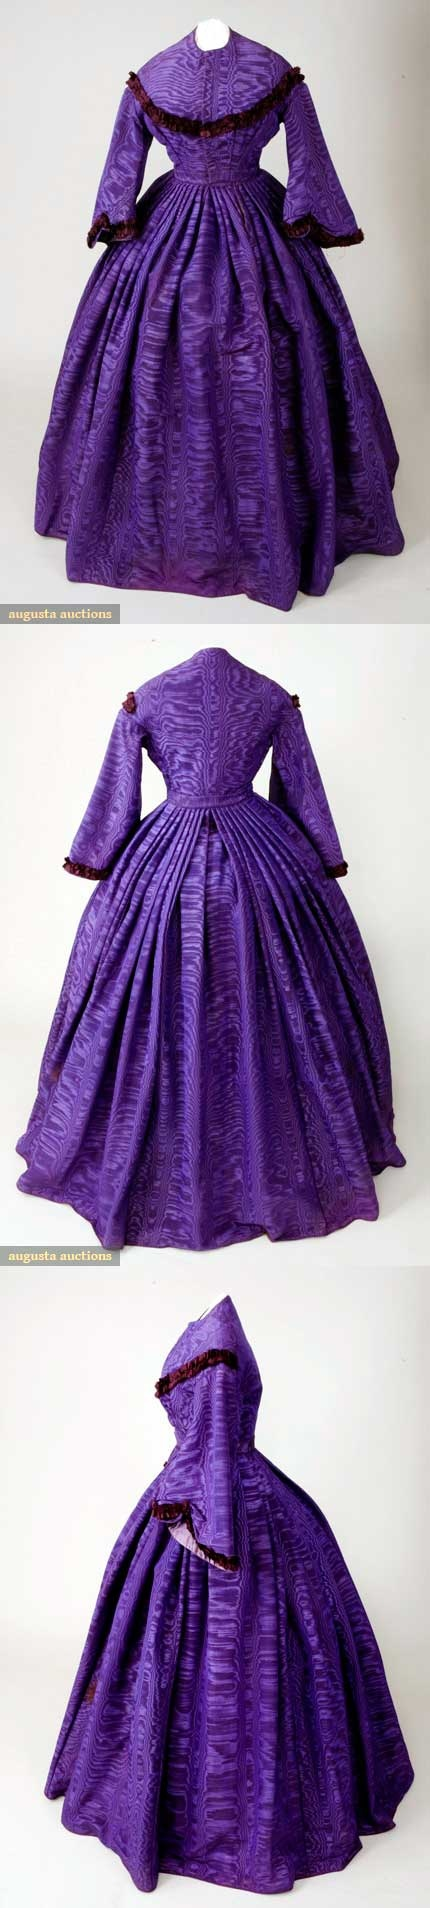 Dress, 1862-1865. Purple ribbed moiré silk, trimmed with pinked and tucked burgundy silk. Collarless neckline, front hook closure, padded bodice fitted & trimmed with pinked silk in diagonal line to shoulders. Wide pagoda sleeves, inset waistband, full knife-pleated skirt with 1 pocket in seam. Three different fabric linings: lavender silk, brown cotton, and glazed cotton. Augusta Auctions